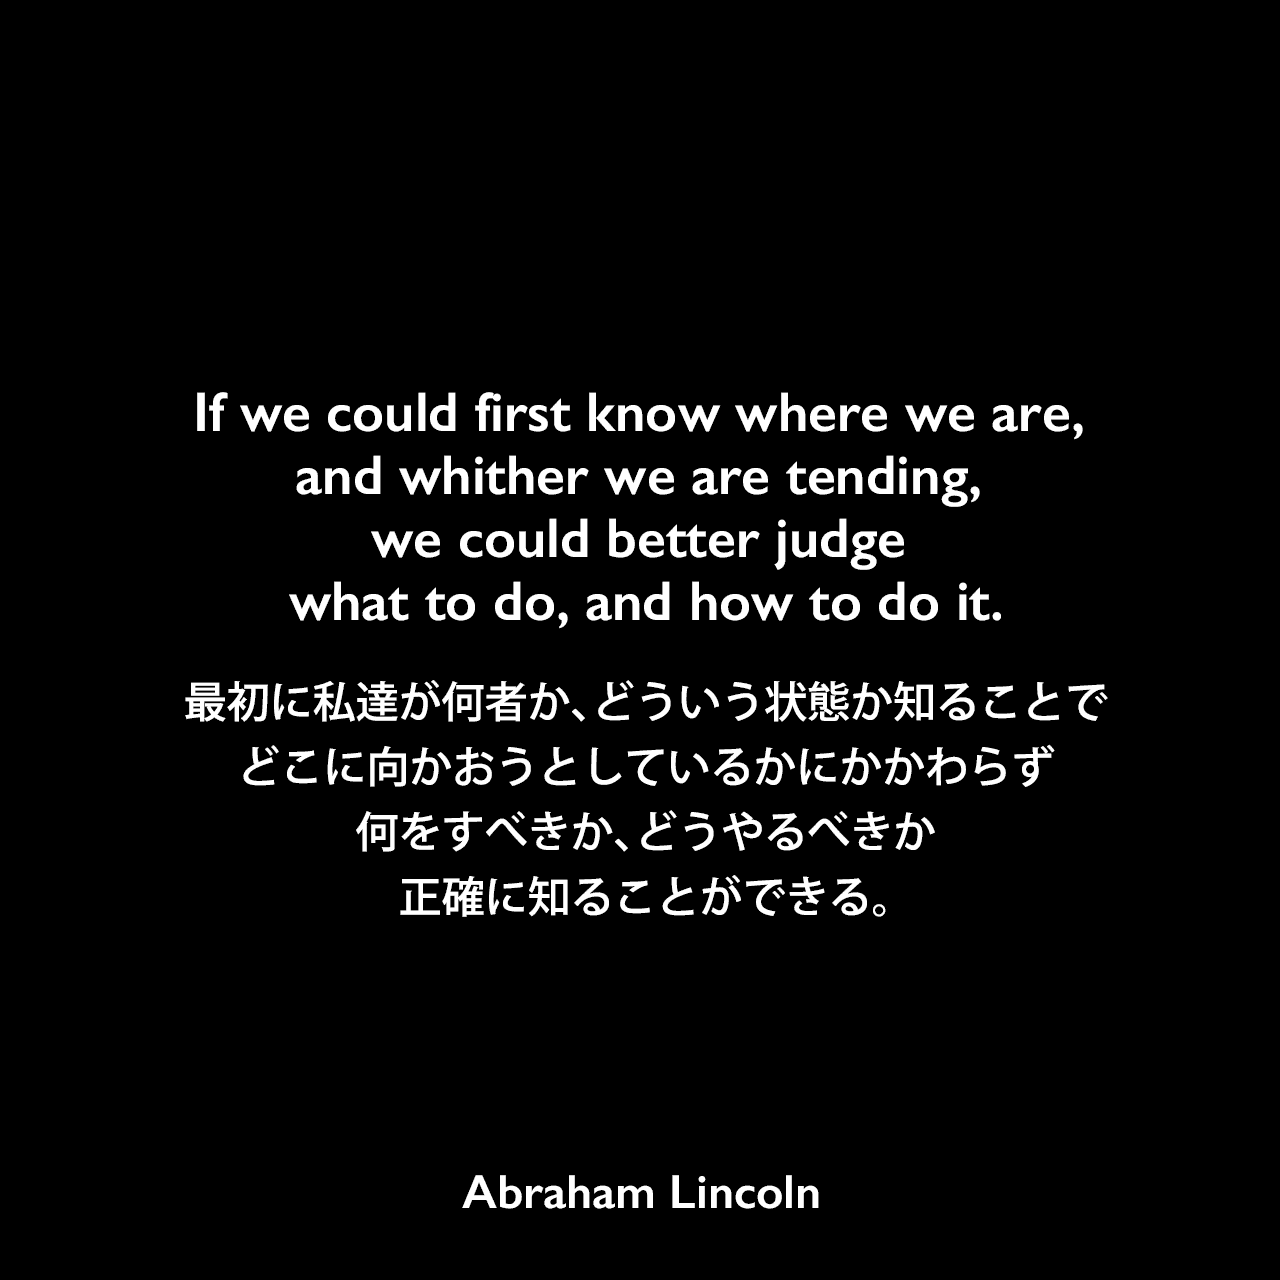 If we could first know where we are, and whither we are tending, we could better judge what to do, and how to do it.最初に私達が何者か、どういう状態か知ることで、どこに向かおうとしているかにかかわらず何をすべきか、どうやるべきか正確に知ることができる。- イリノイ州の共和党へ向けたリンカーンのスピーチ(1858年)よりAbraham Lincoln